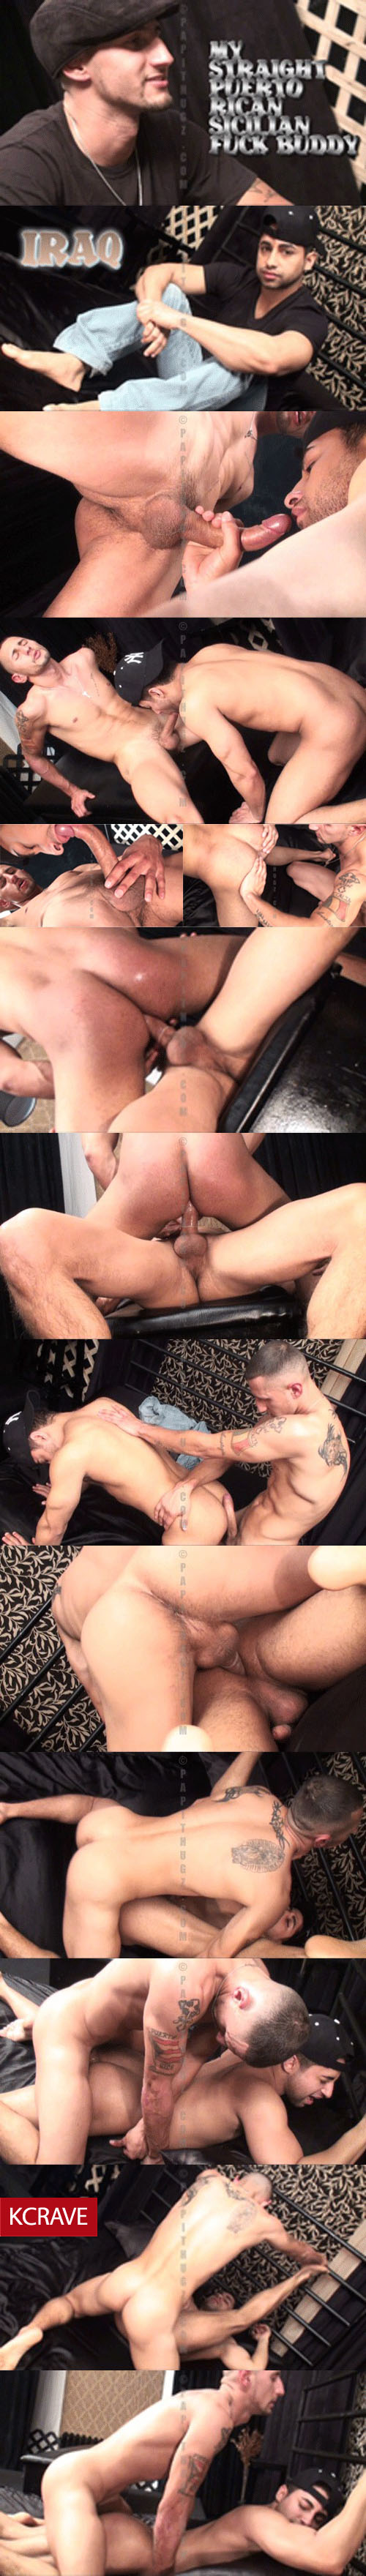 Papithugz - Fucked by a Puerto Rican-Sicilian Straight Boy